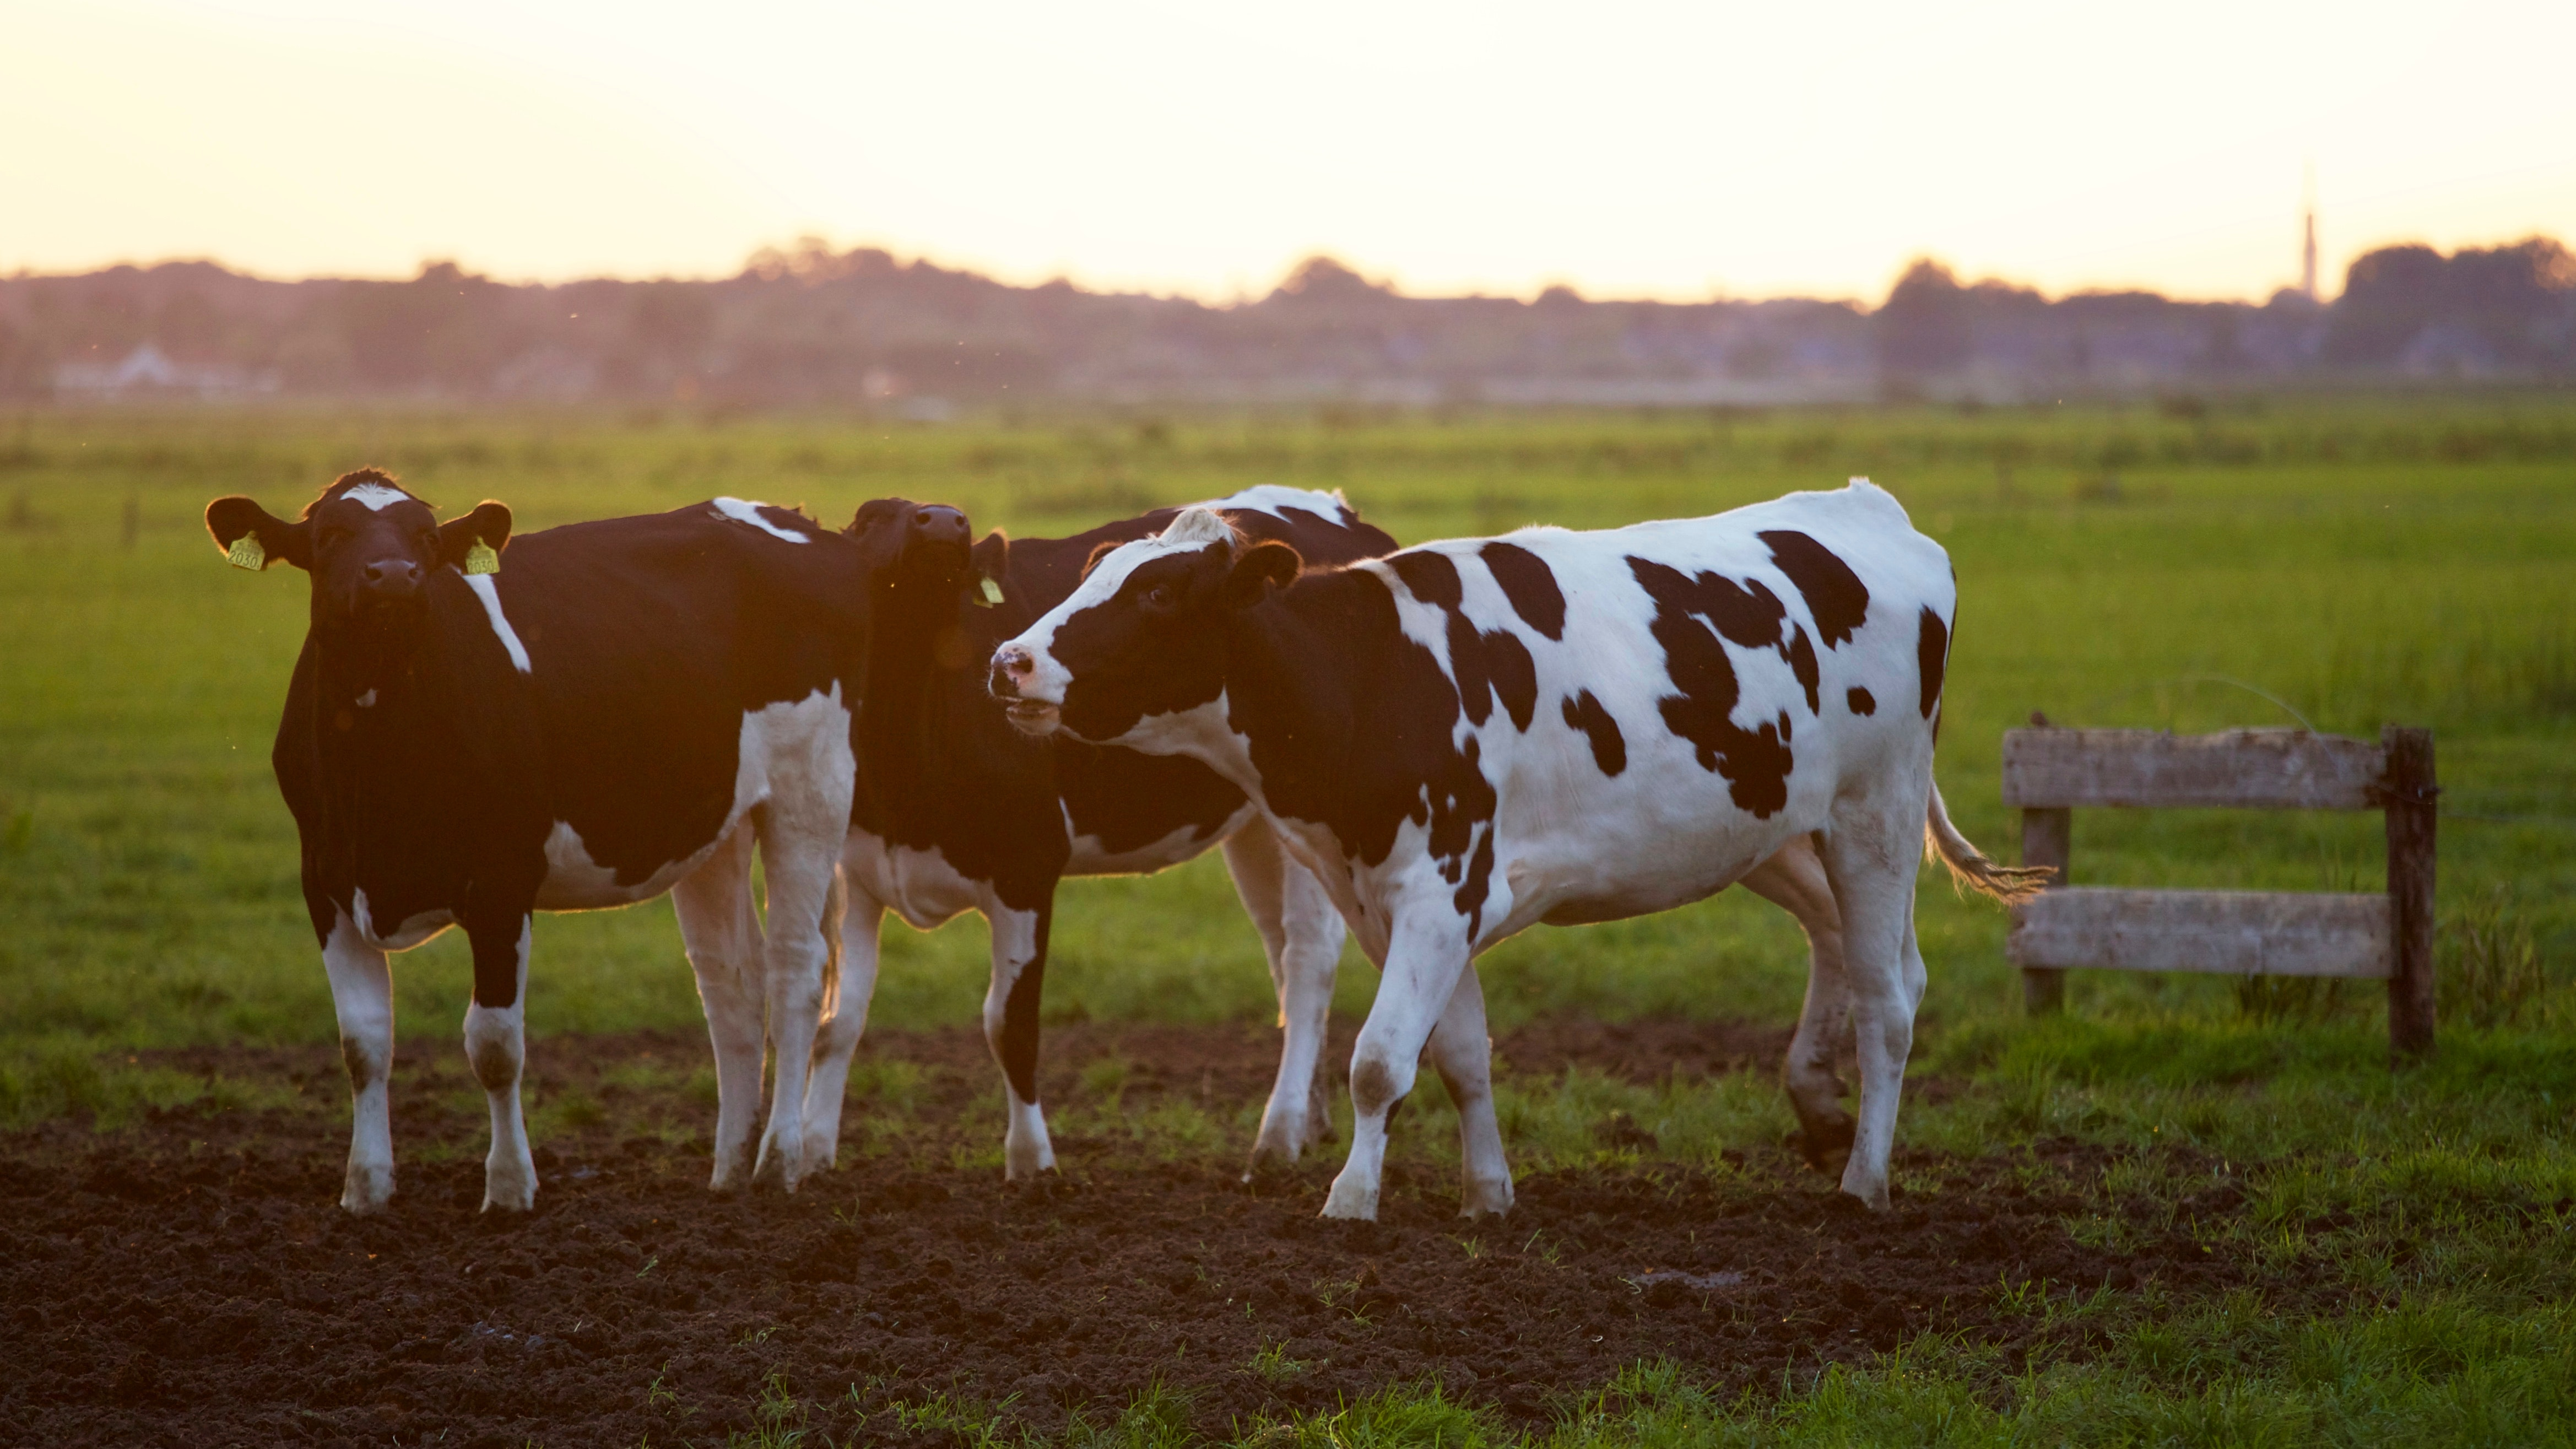 Three cows in a pasture.